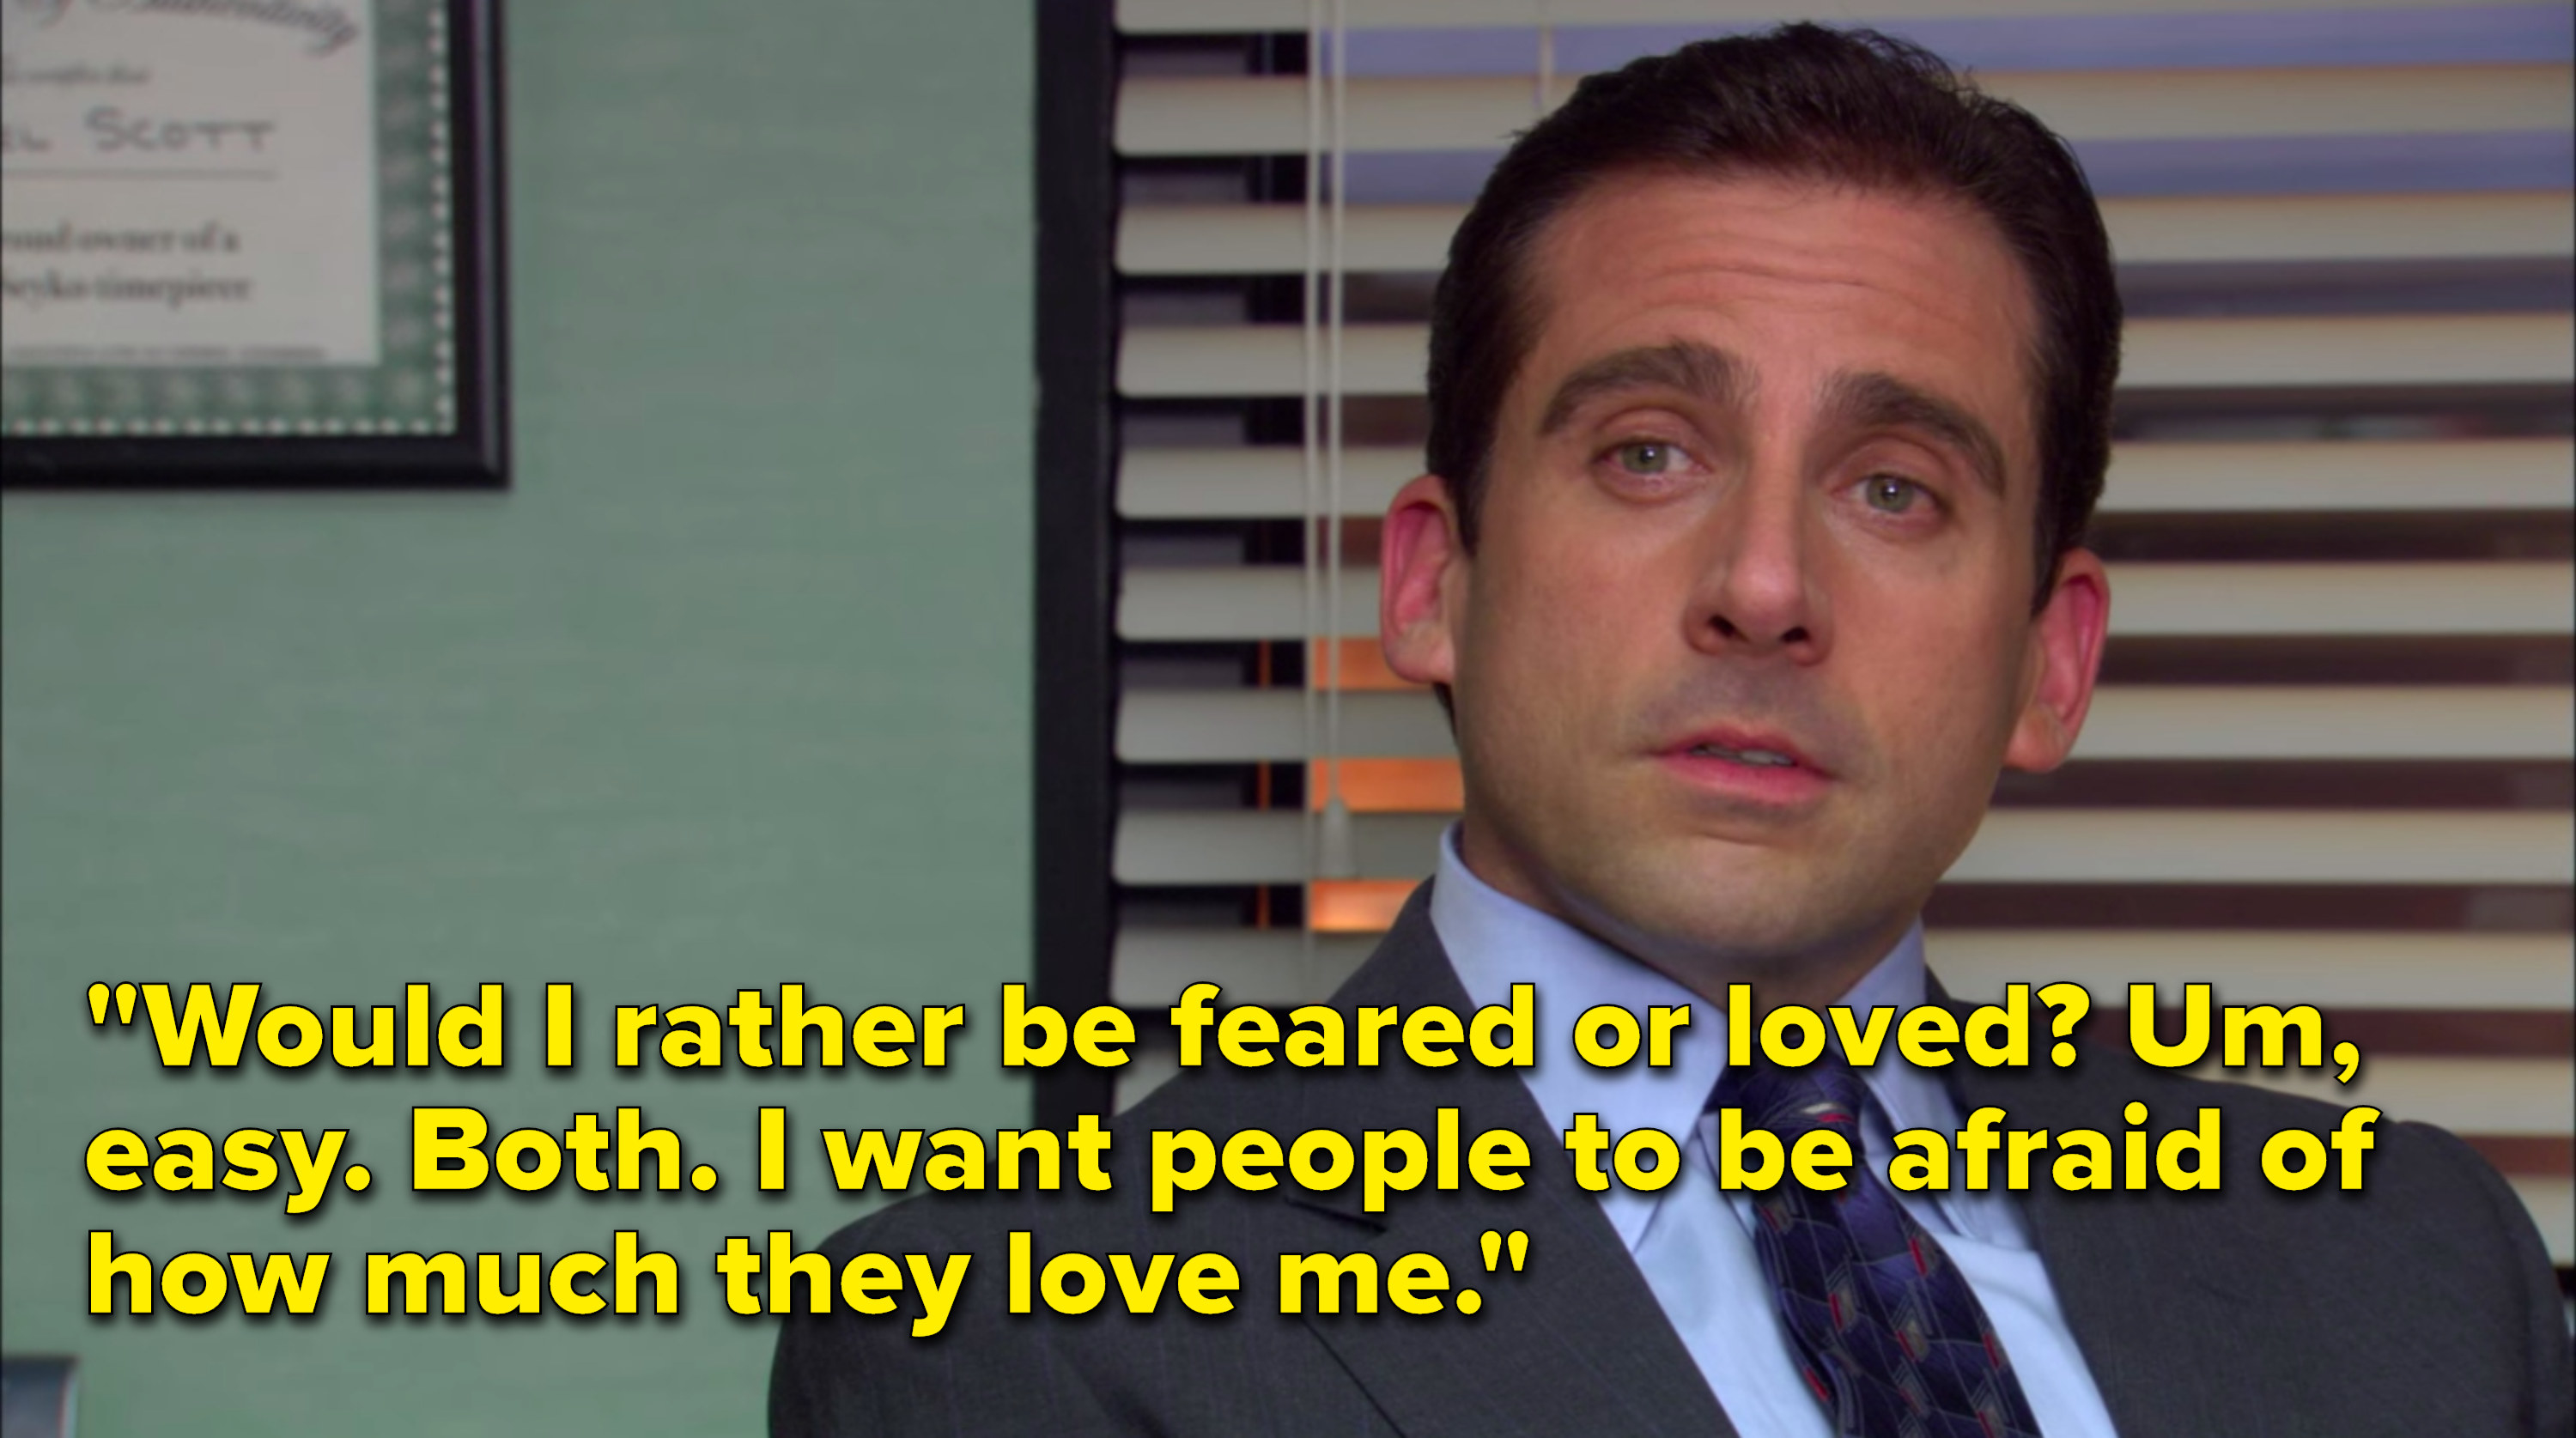 """Michael says, """"Would I rather be feared or loved, um, easy, both, I want people to be afraid of how much they love me"""""""